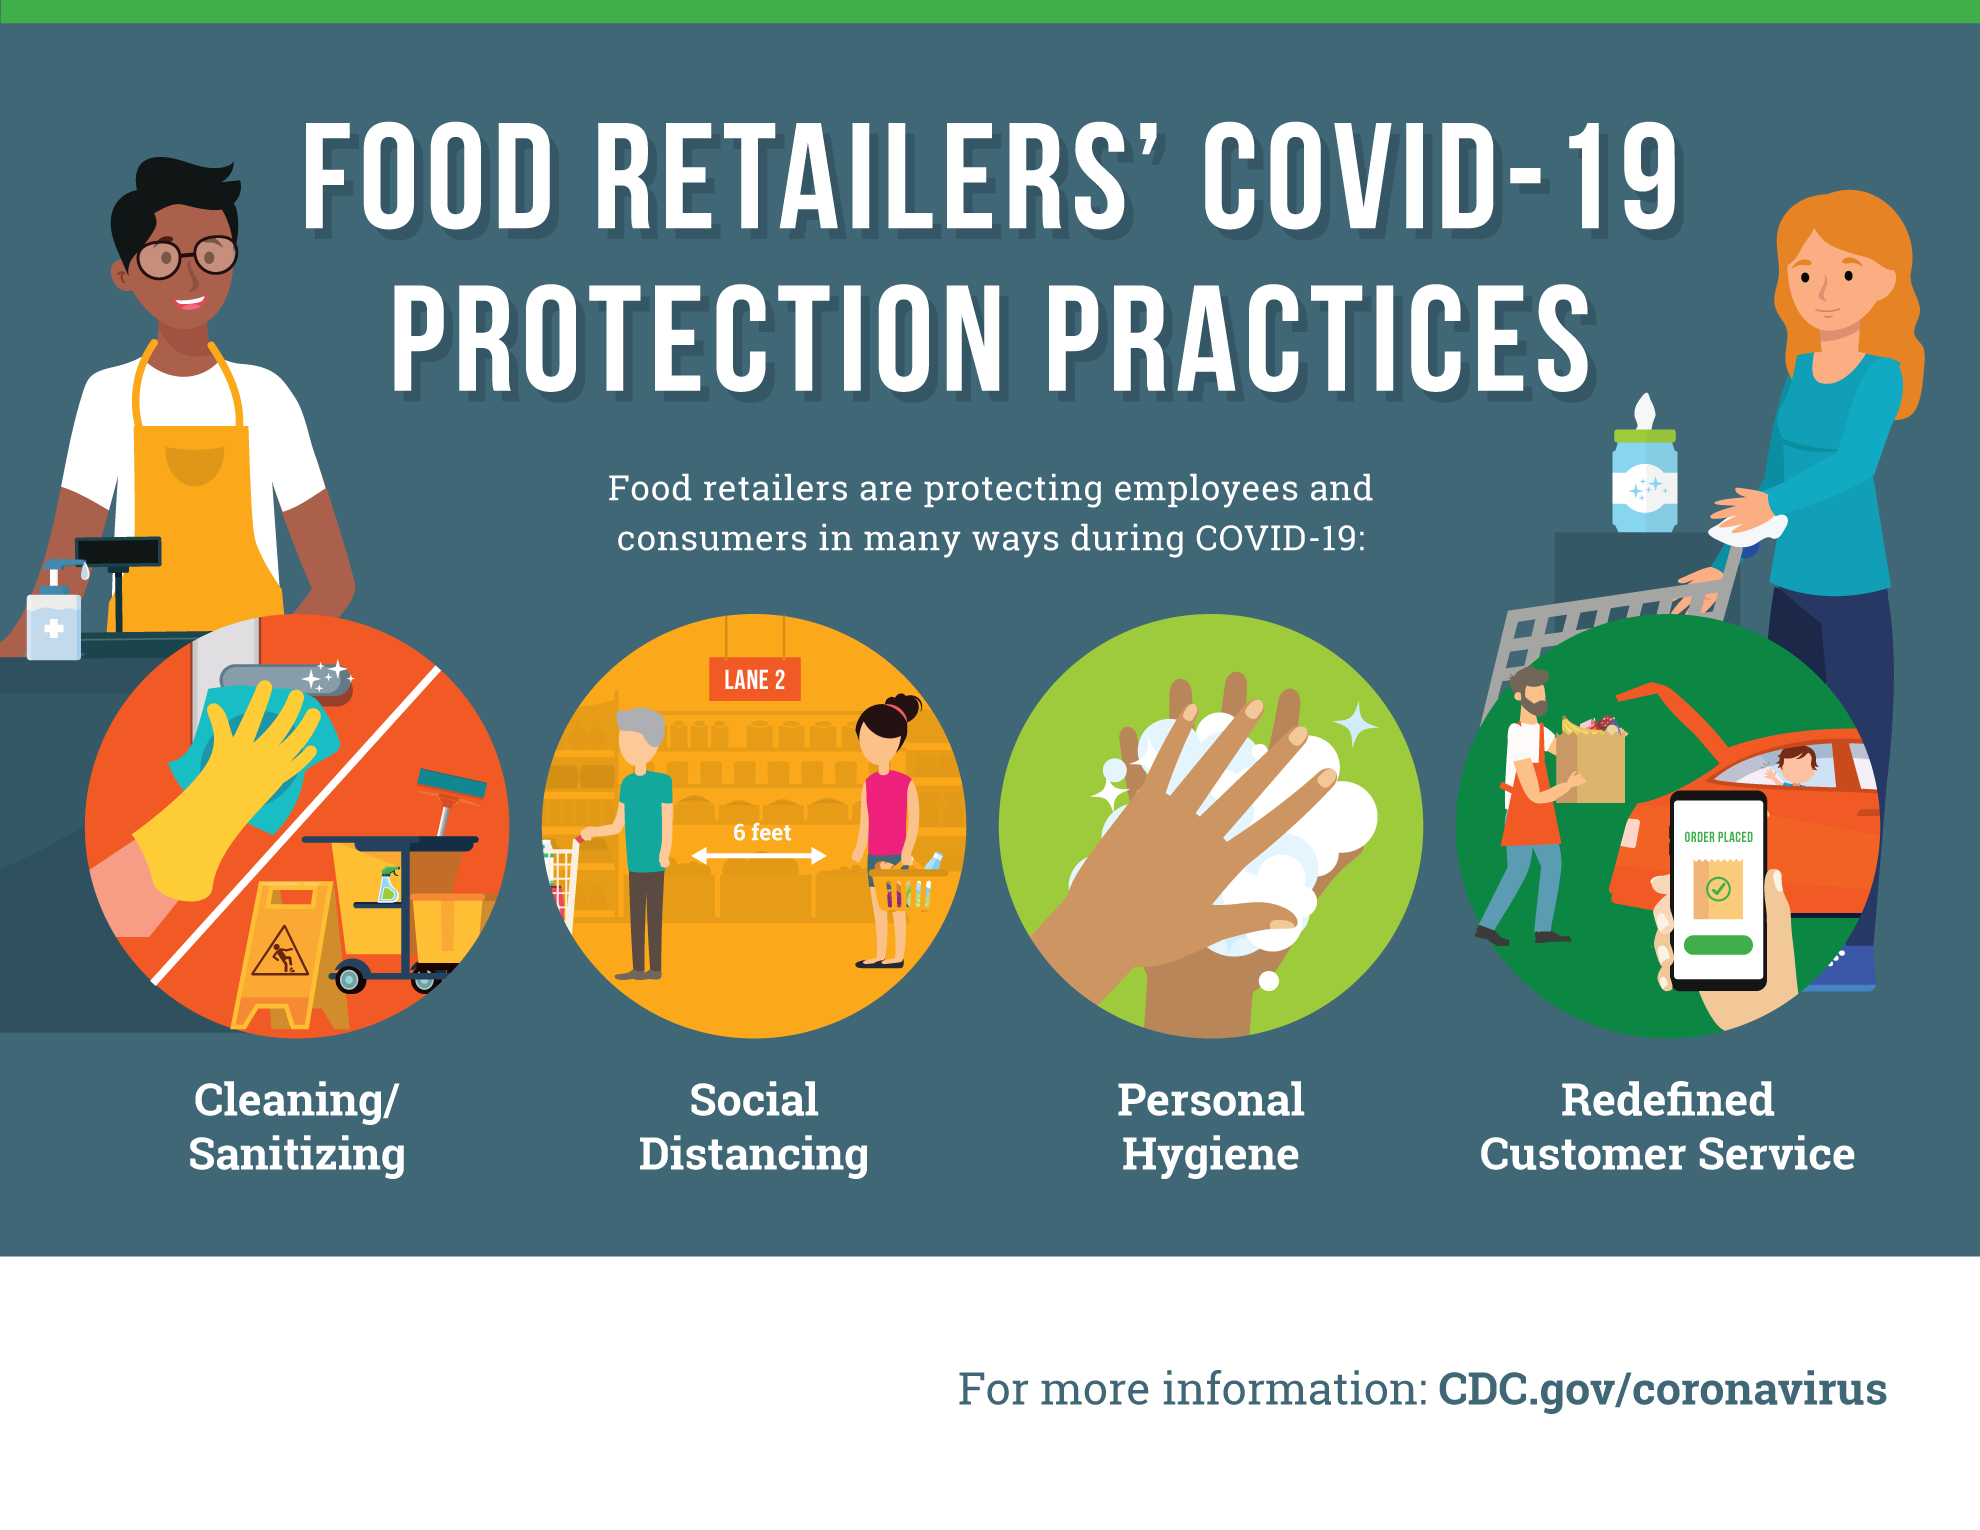 TGN_033120_FMI_Retailer_Safety_Infographic_no_logo